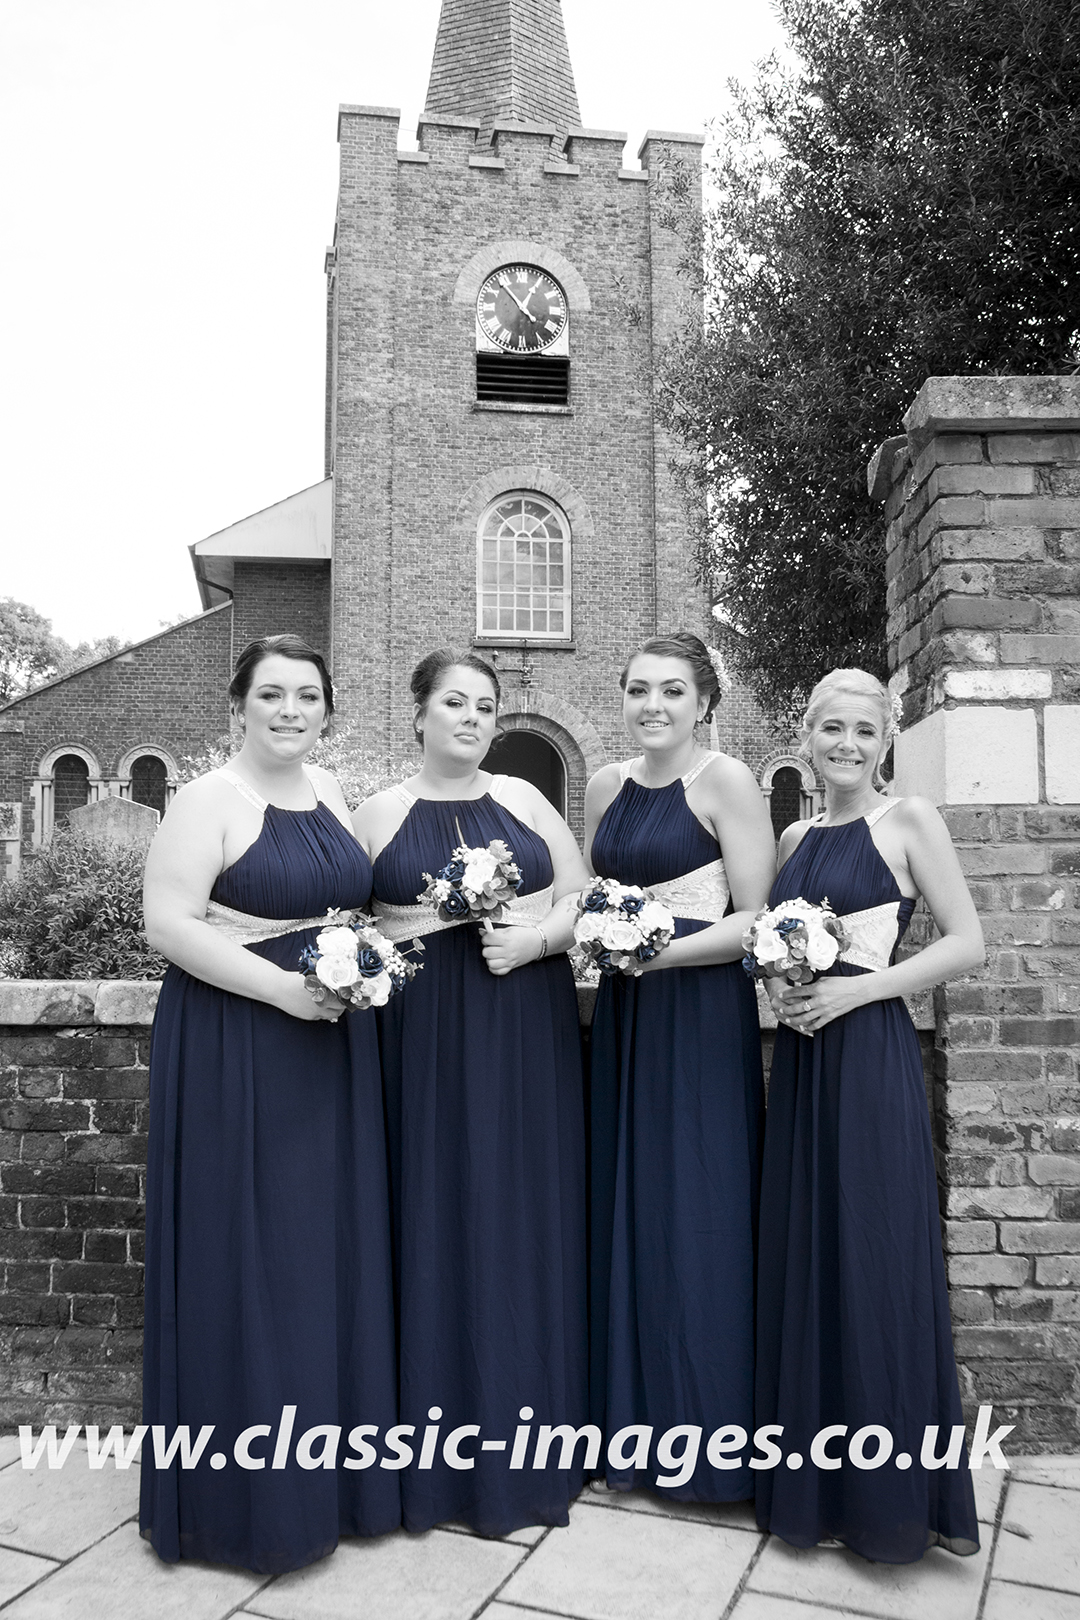 ceremony-bridemaids-wedding-photo-sunbury